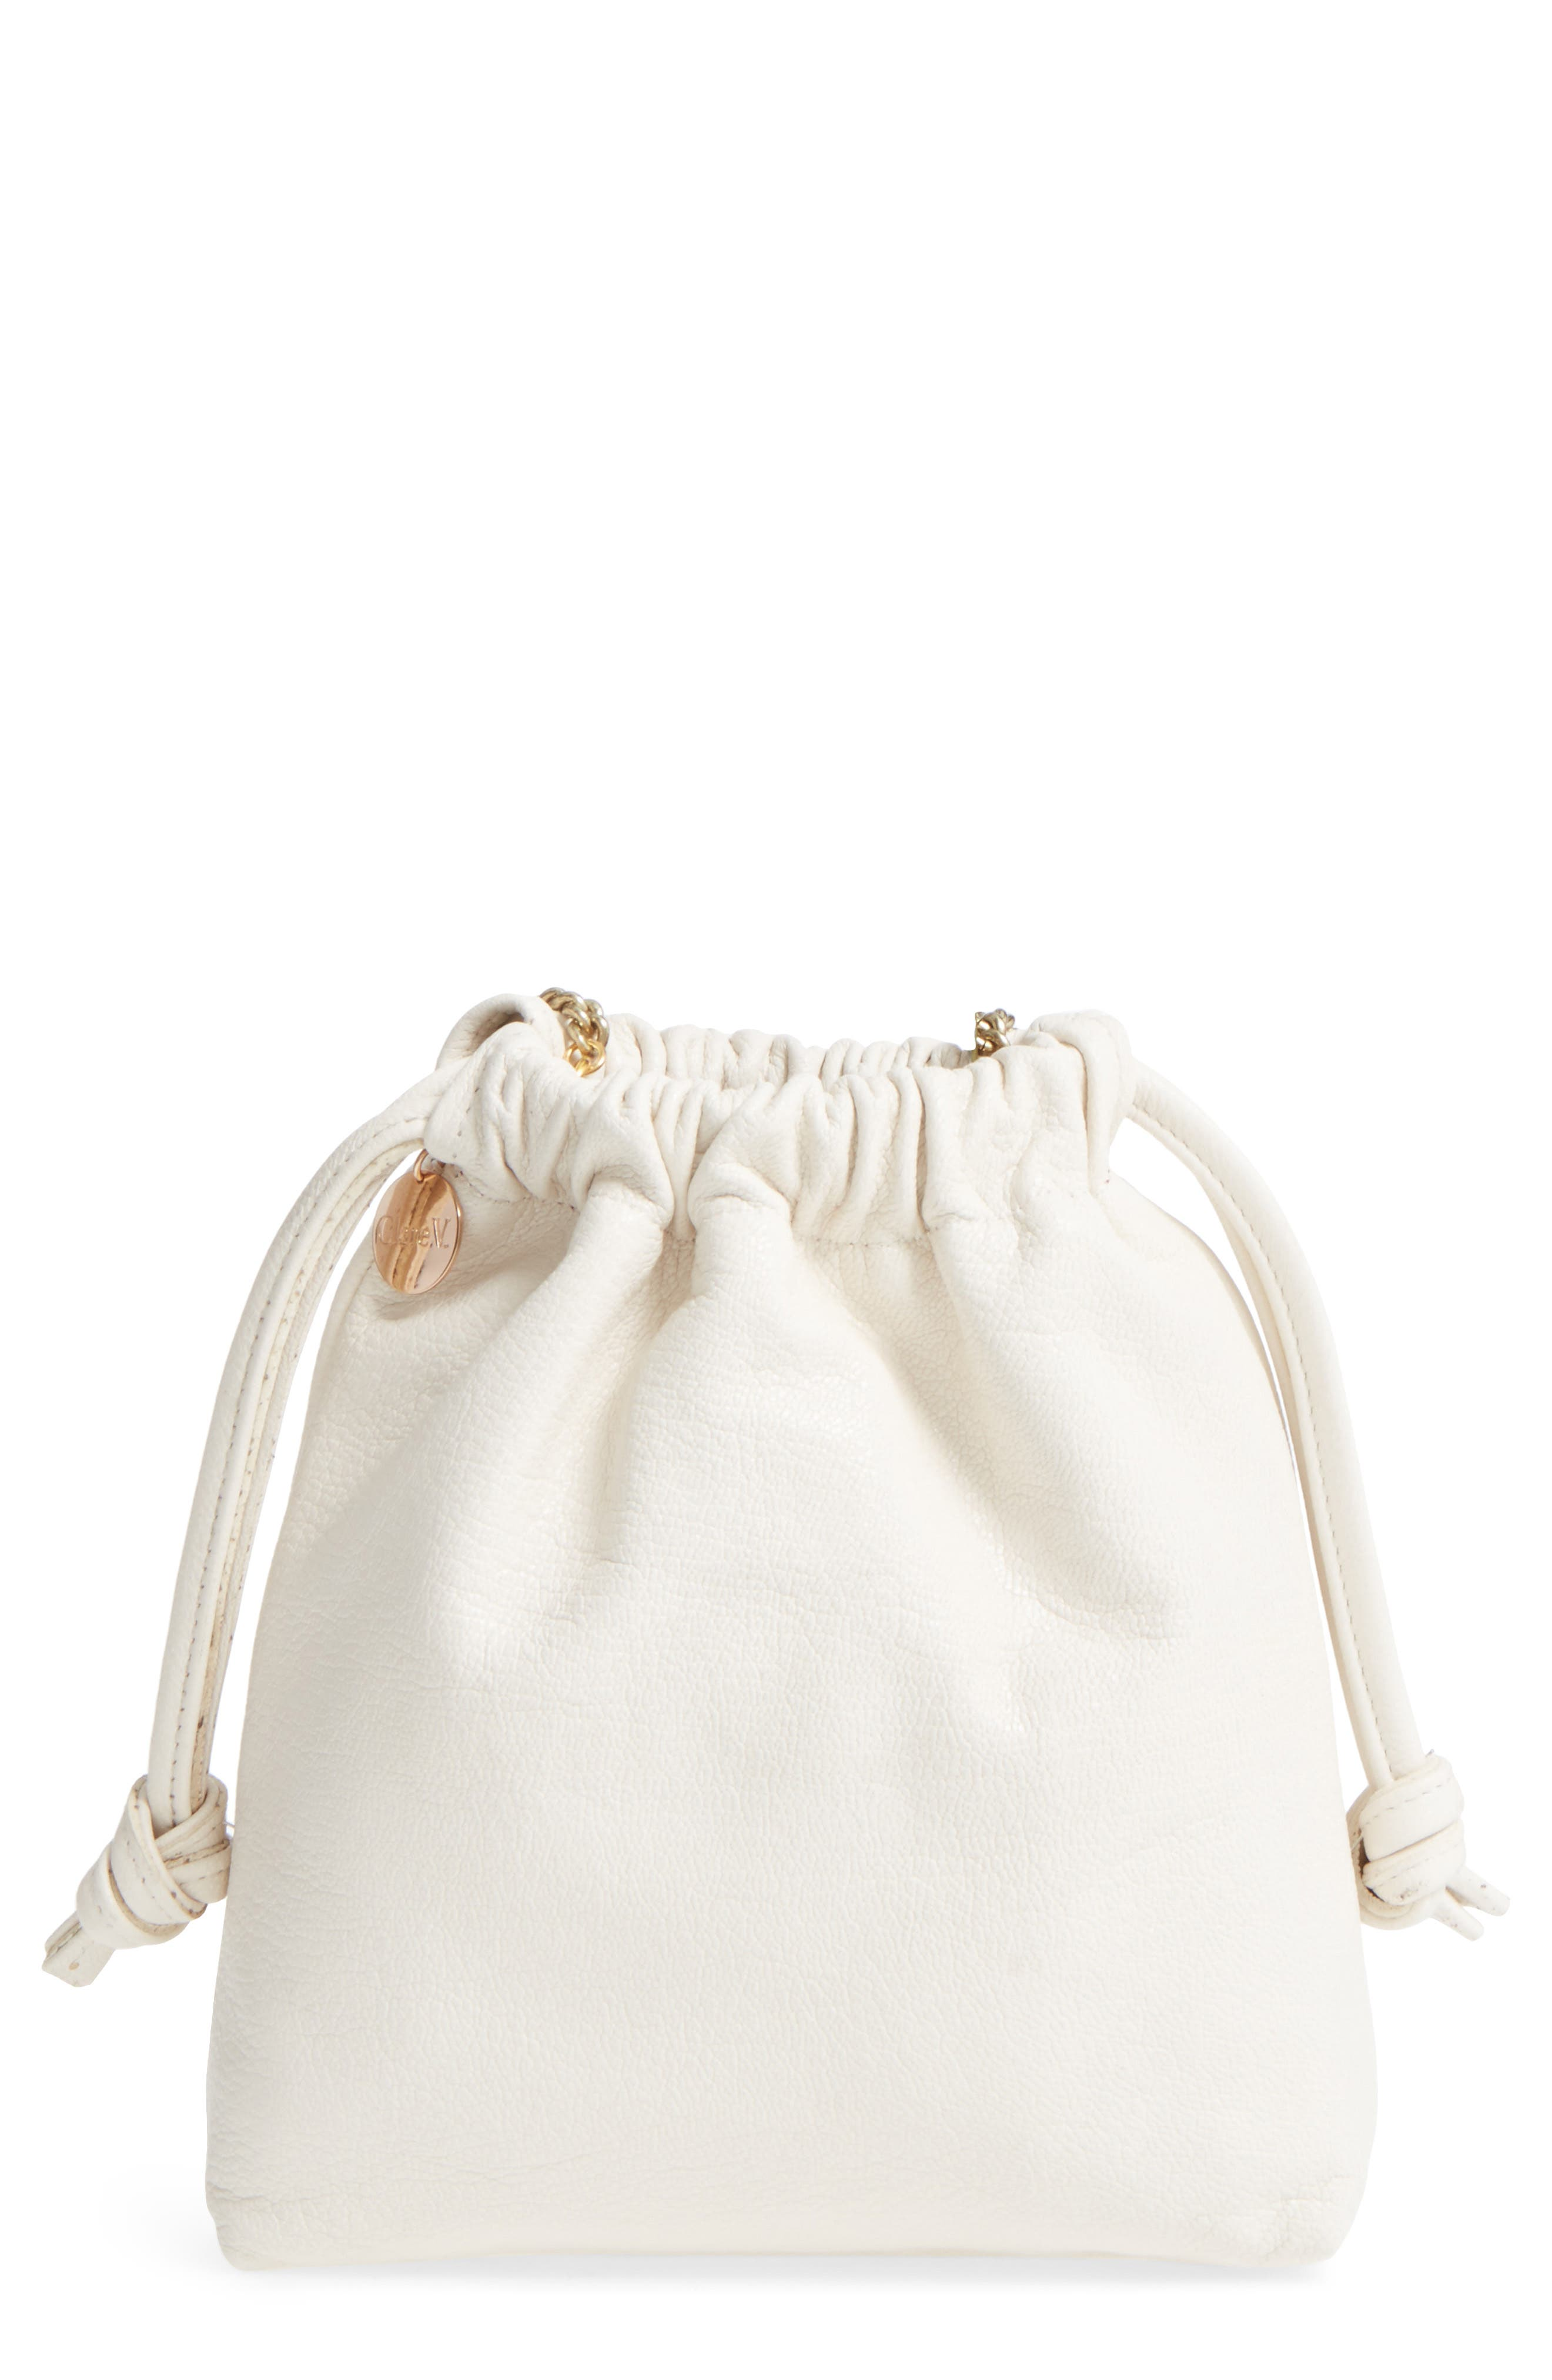 Alternate Image 1 Selected - Clare V. Leather Drawstring Wristlet Pouch